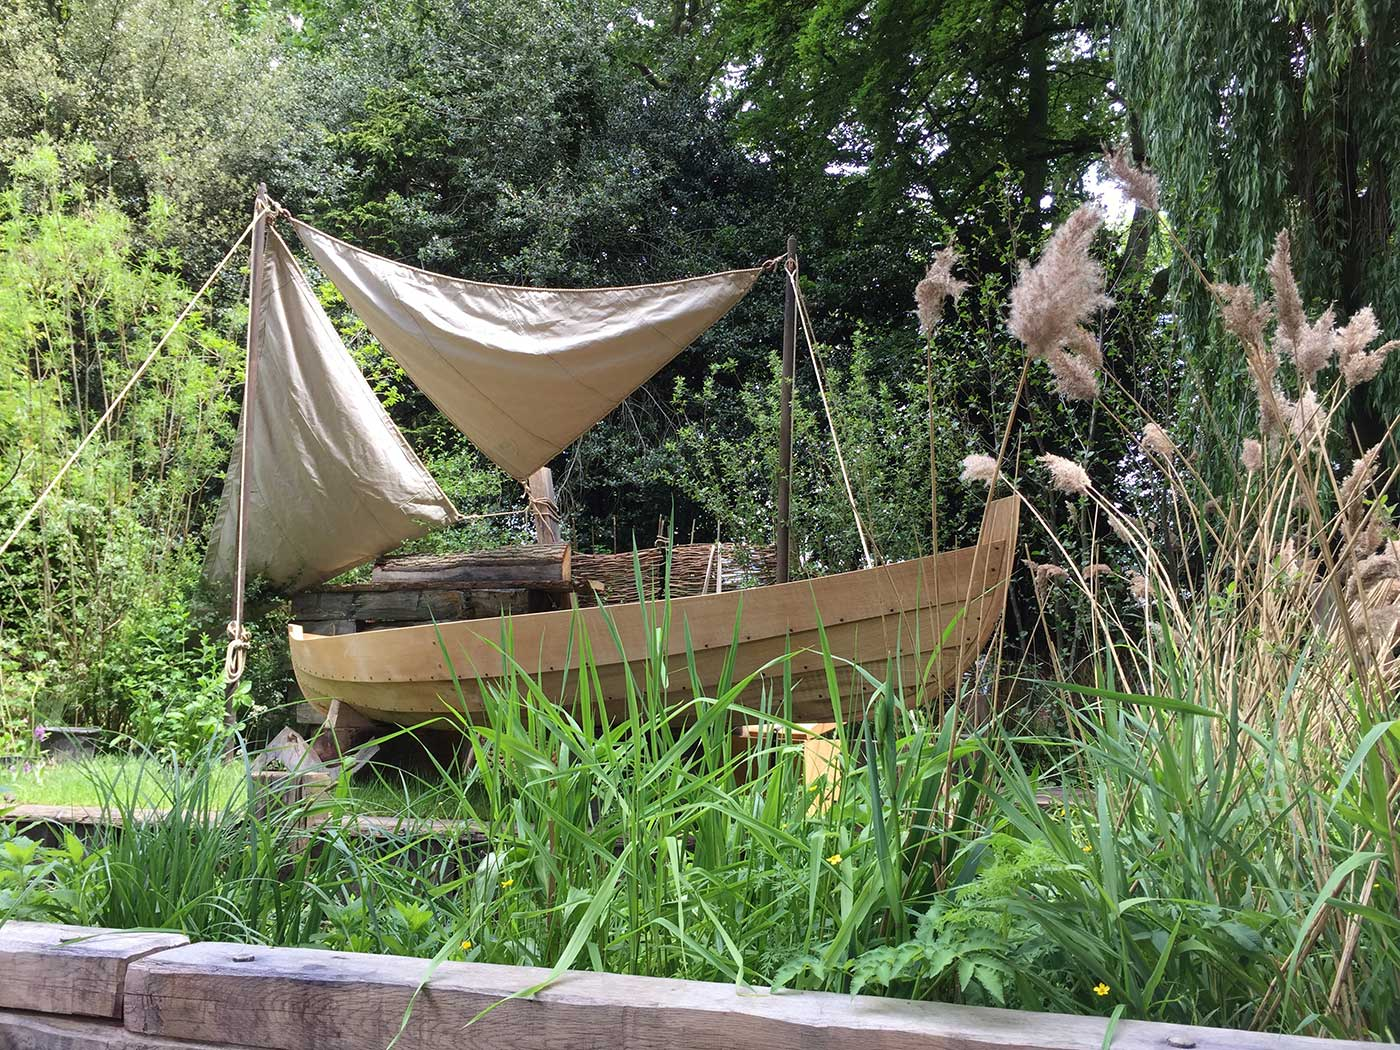 23 05 17 replica of the u0027chet boat u0027 takes centre stage at the rhs